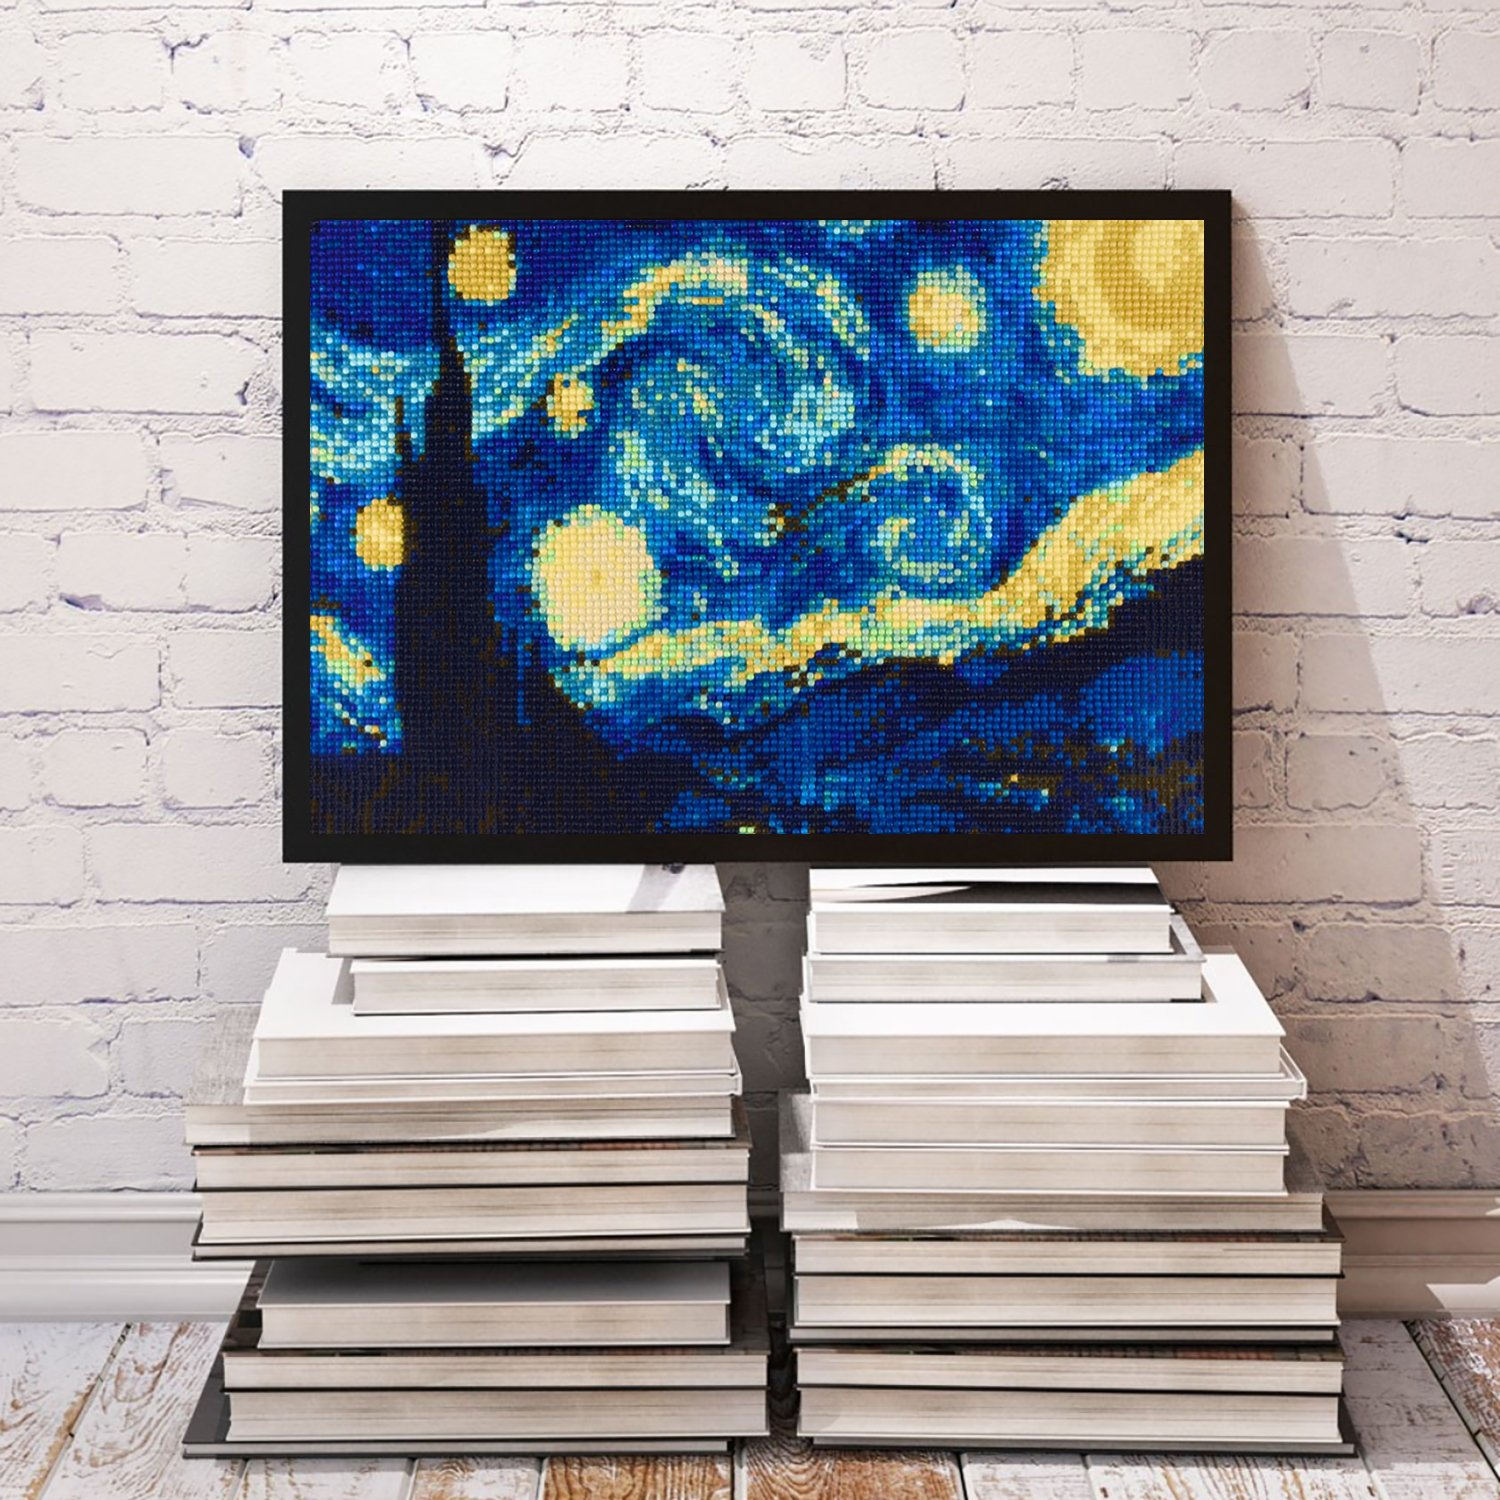 How to learn diamond painting